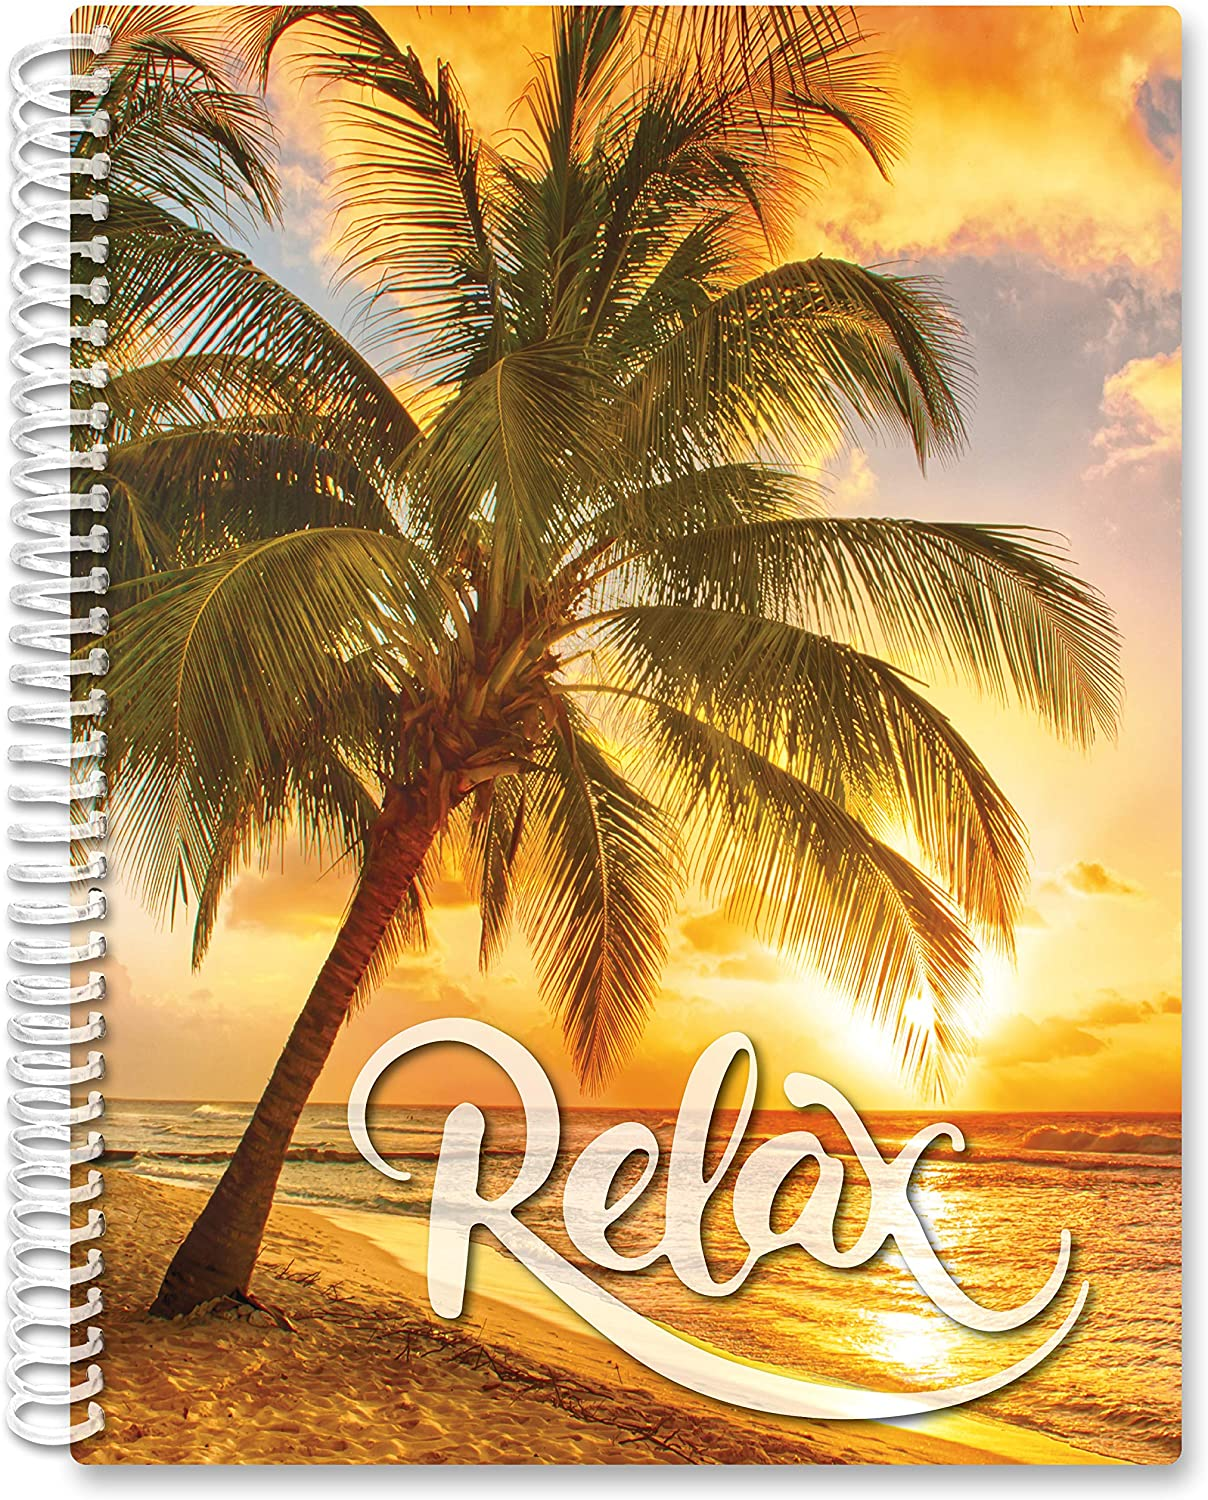 2021 Calendar Year Softcover Planner - 8.5 x 11 - Relax Tropics